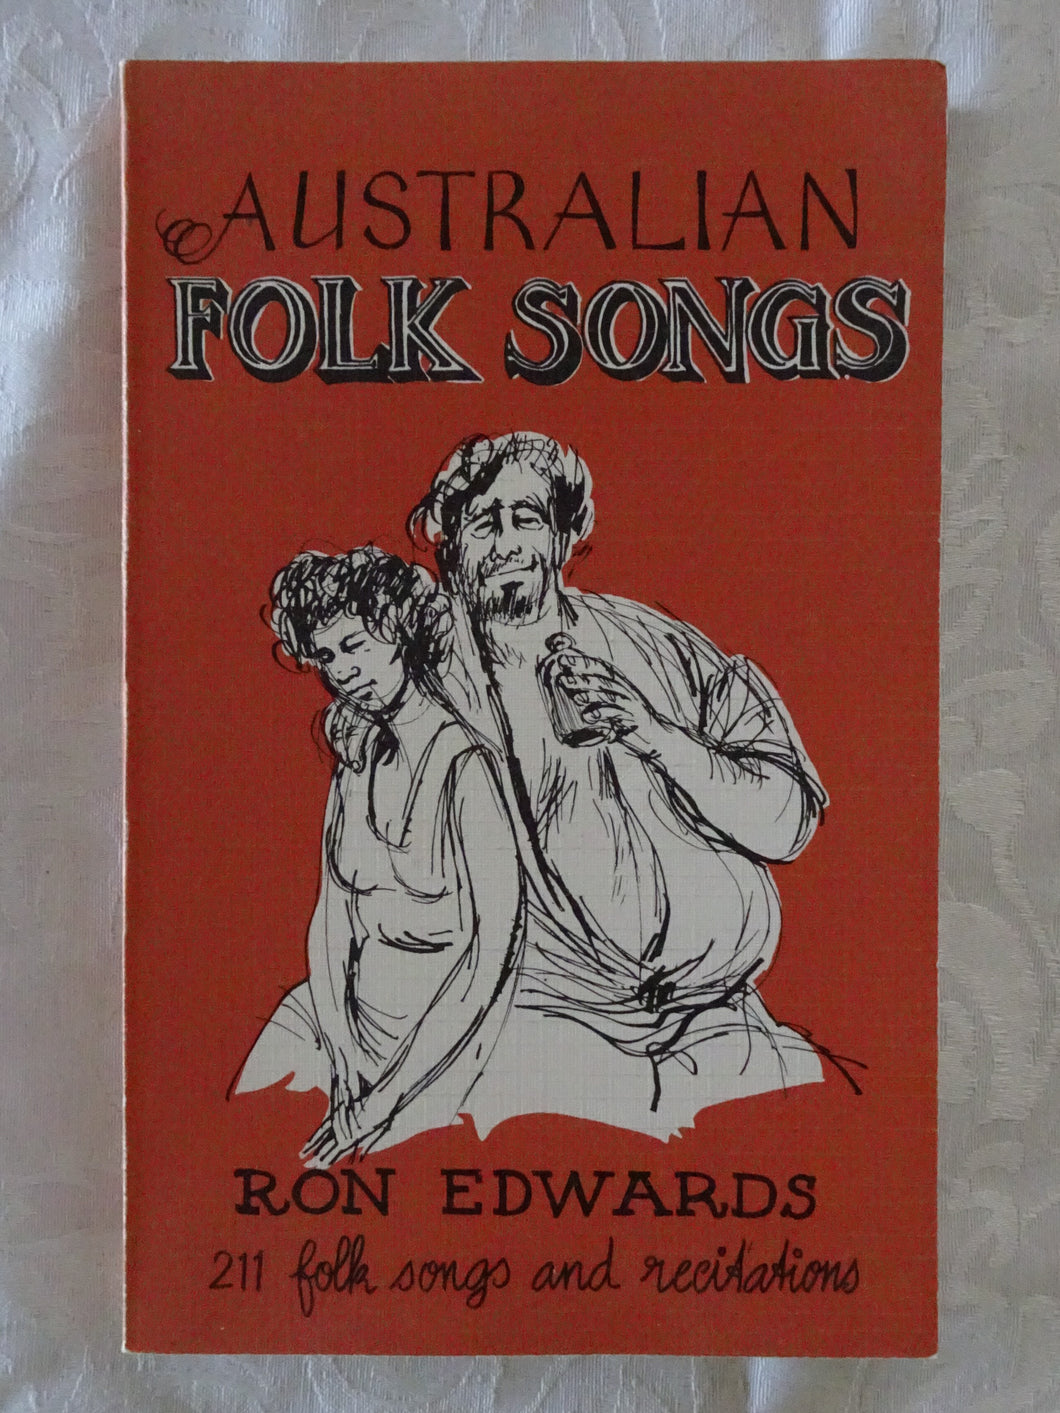 Australian Folk Songs by Ron Edwards